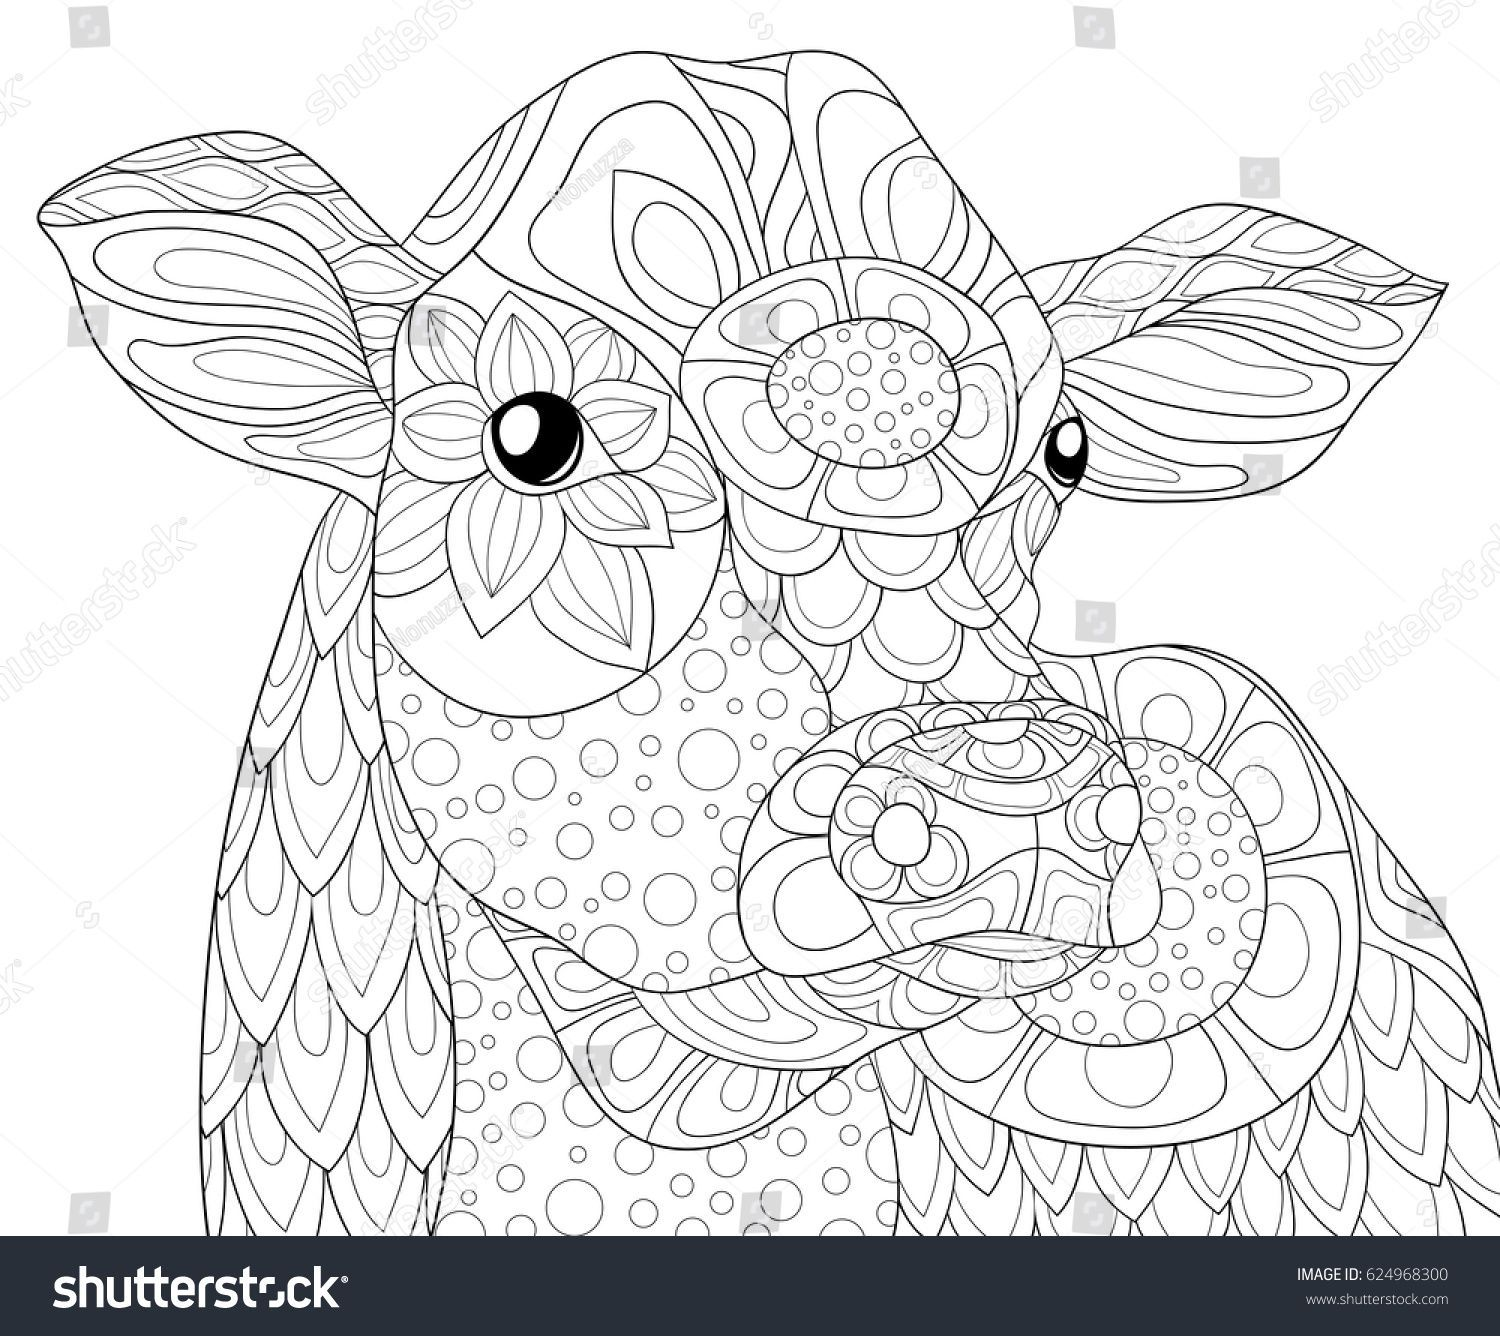 Adult Coloring Page Cowzen Art Style Illustration In 2020 Cow